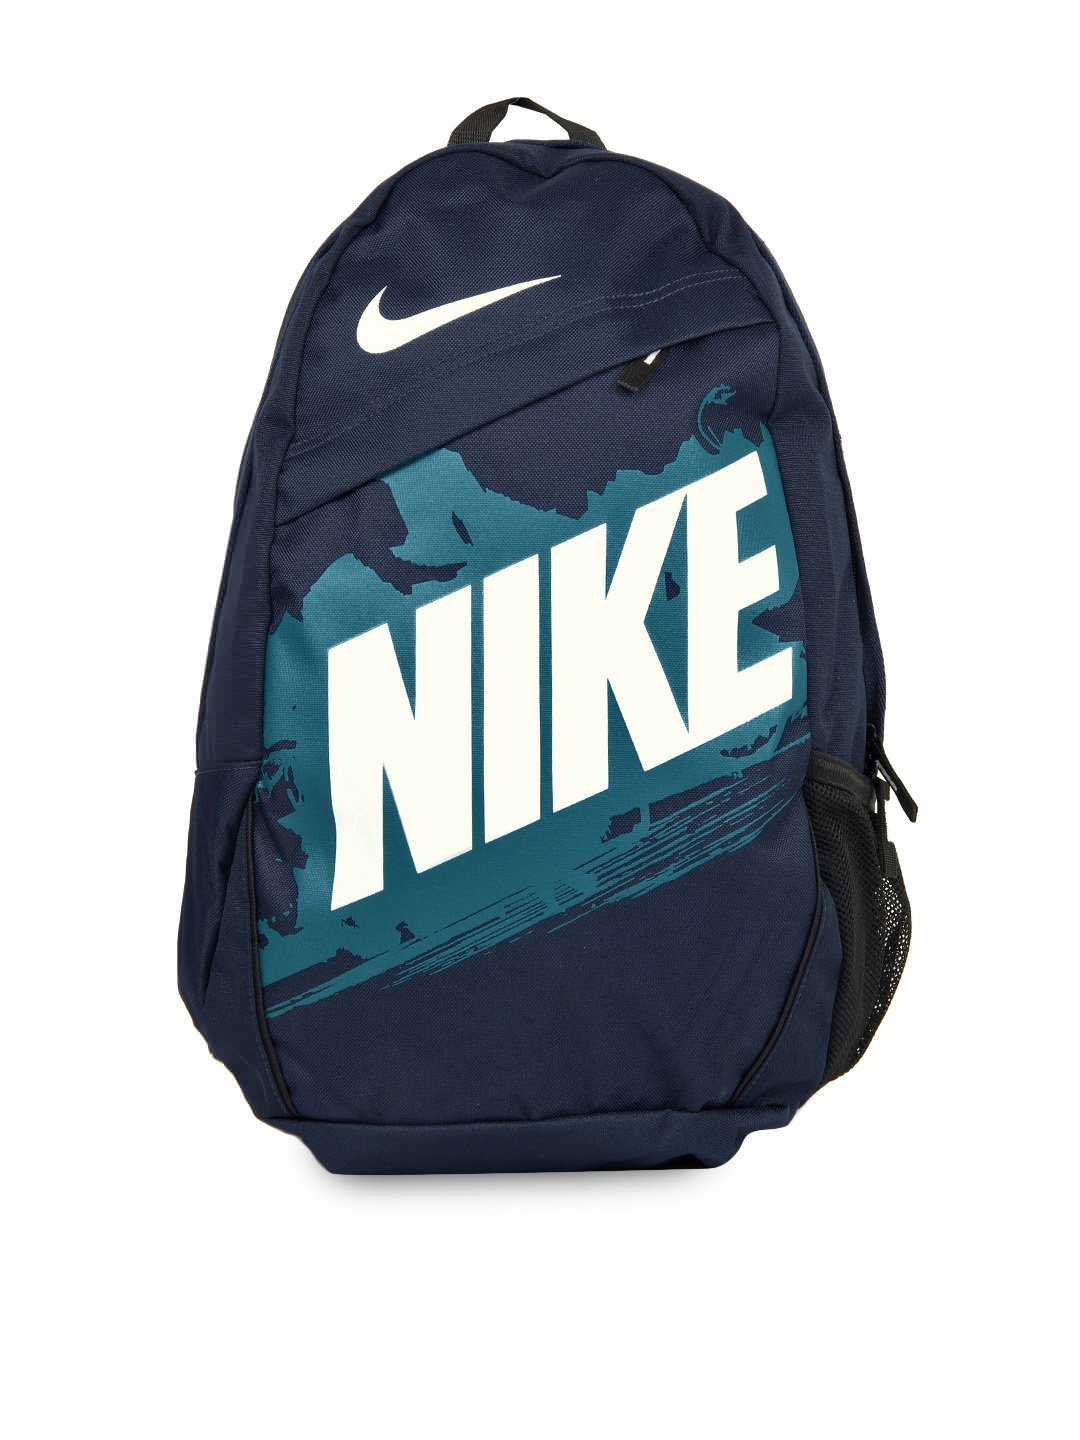 Nike Bags Online India